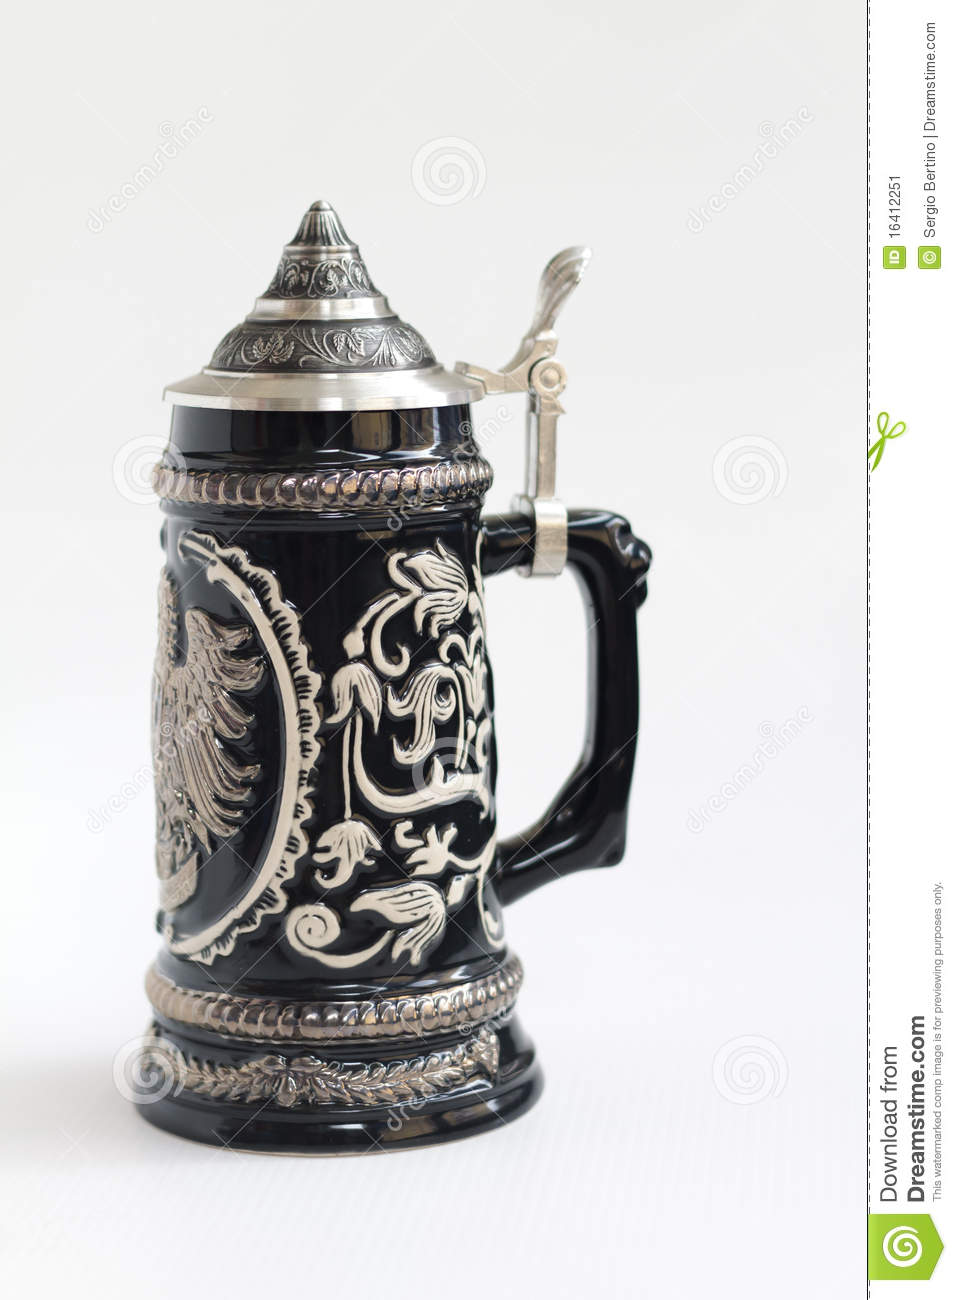 Beer Stein Stock Image   Image  16412251